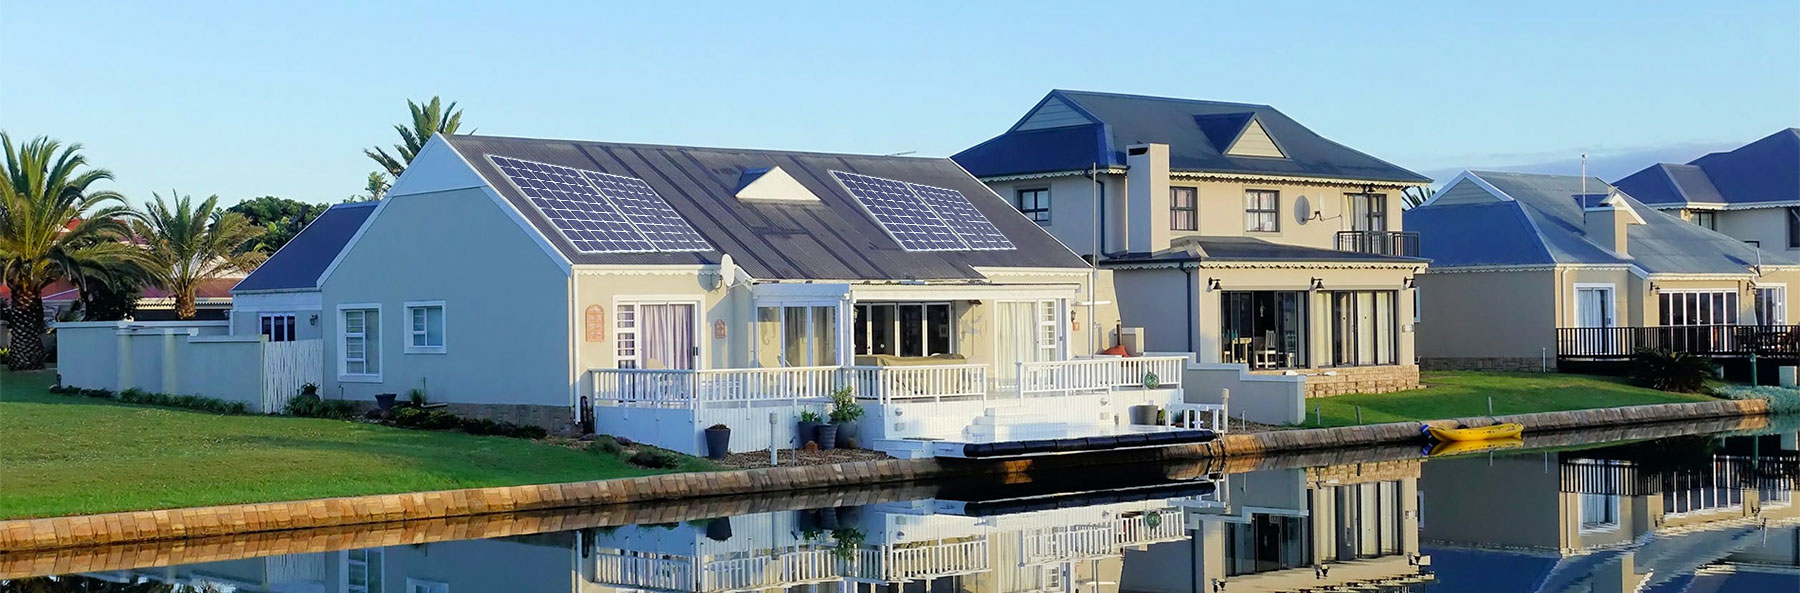 residential Florida home with solar panels installed on roof